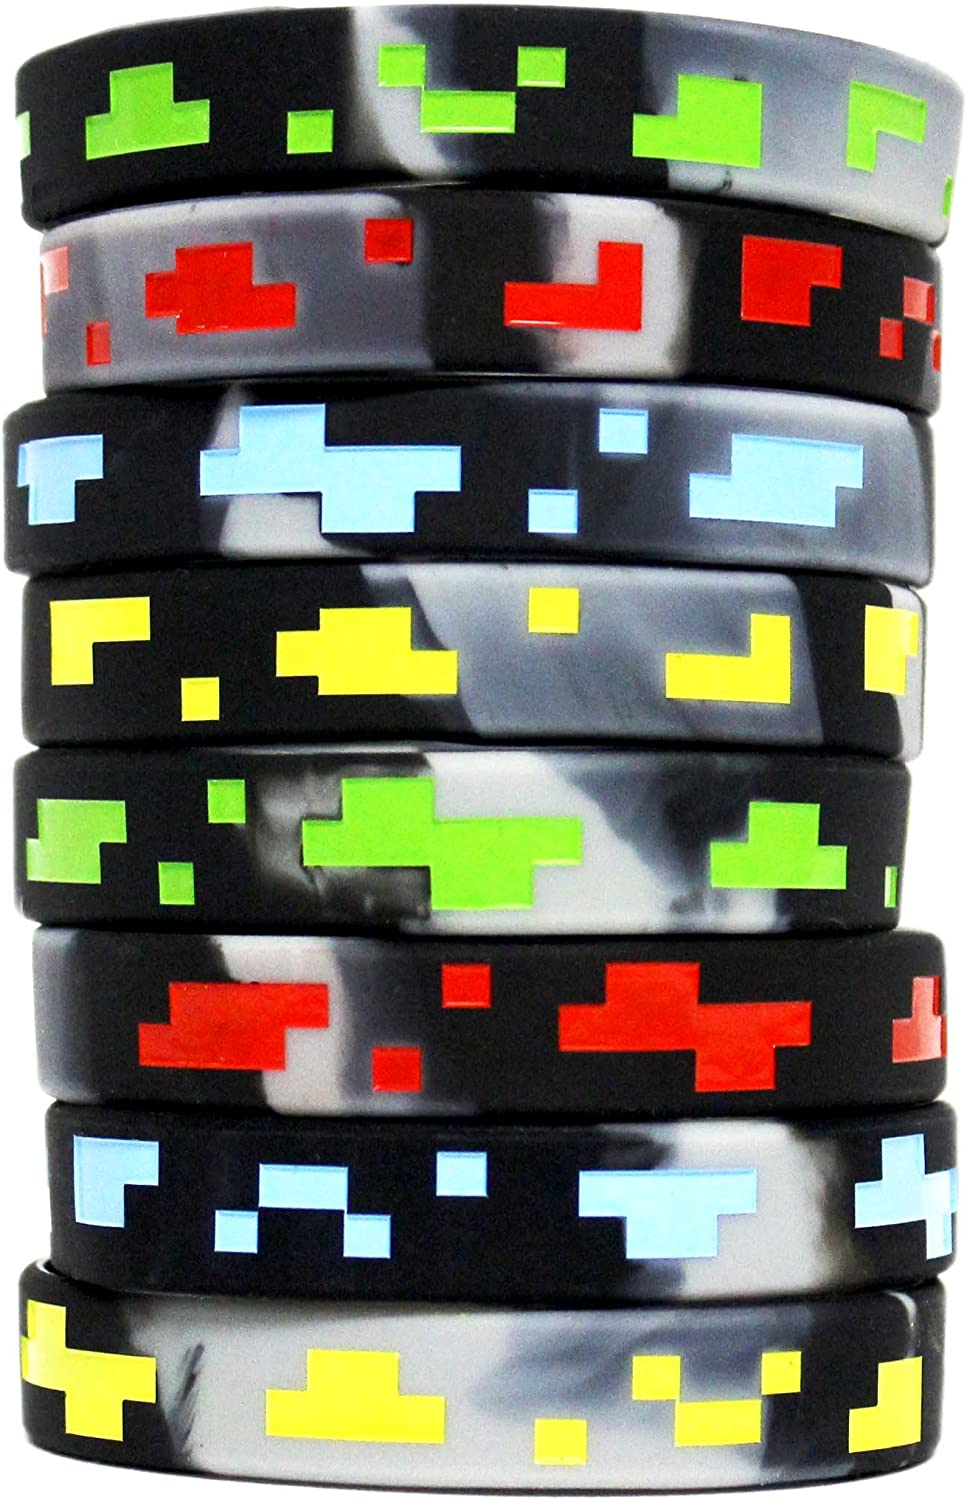 Minecraft Slap Rulers Bracelets Birthday Party Favors 8 Count